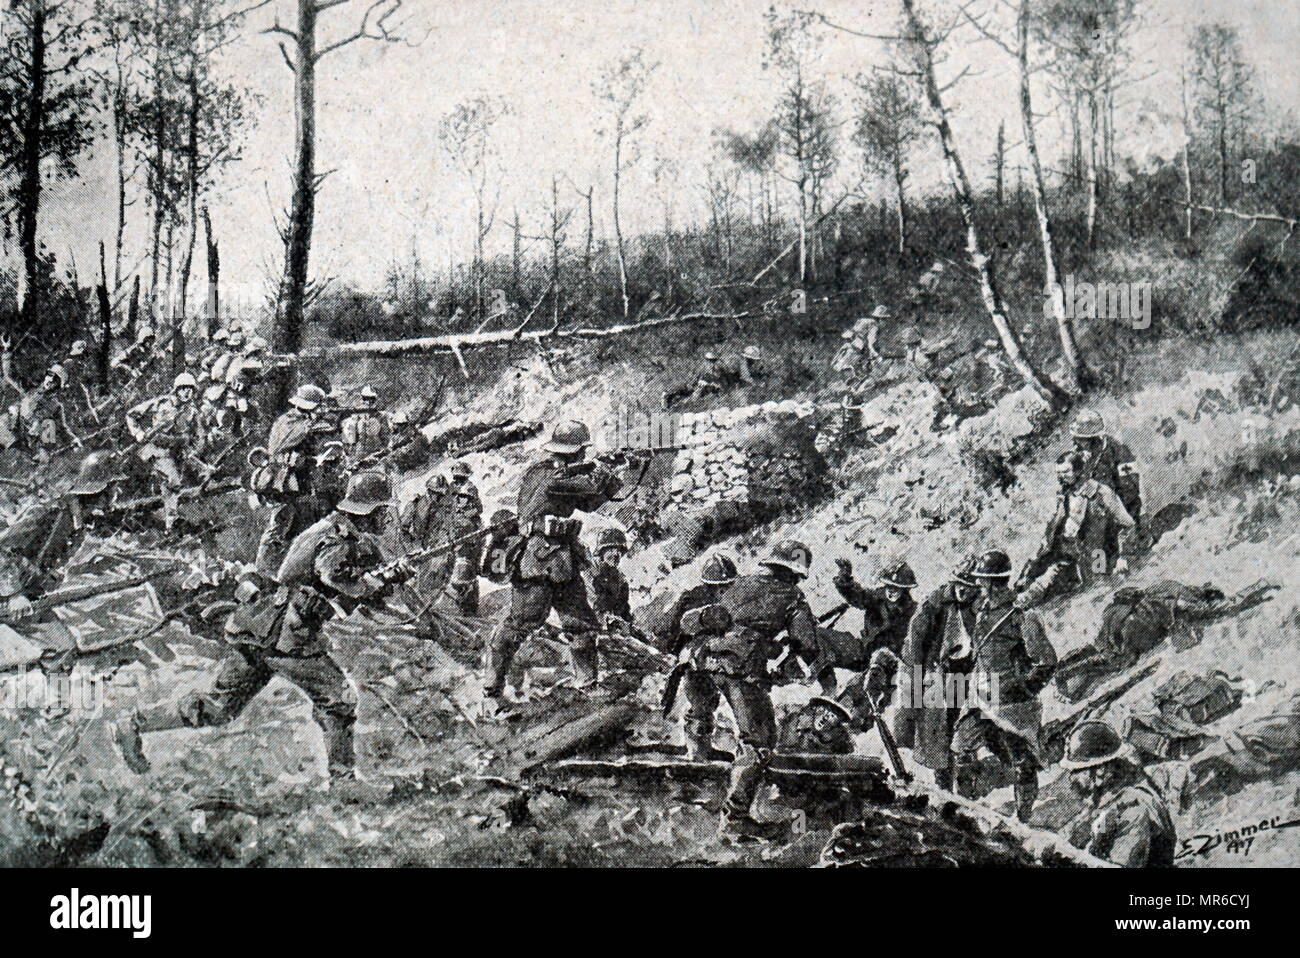 German troops confront French forces during the Second Battle of the Aisne, April 1917, during World War One. However, as French infantry reached the plateau, it was slowed down and then stopped by the intense fire of a very high number of the Germans' machine guns. As a result, the French took 40,000 casualties on the first day alone. Furthermore, during the following 12 days of the battle, French losses continued to rise to 120,000 casualties (dead, wounded, and missing). The final count, when the offensive was over, was 271,000 French casualties and 163,000 Germans casualties. - Stock Image